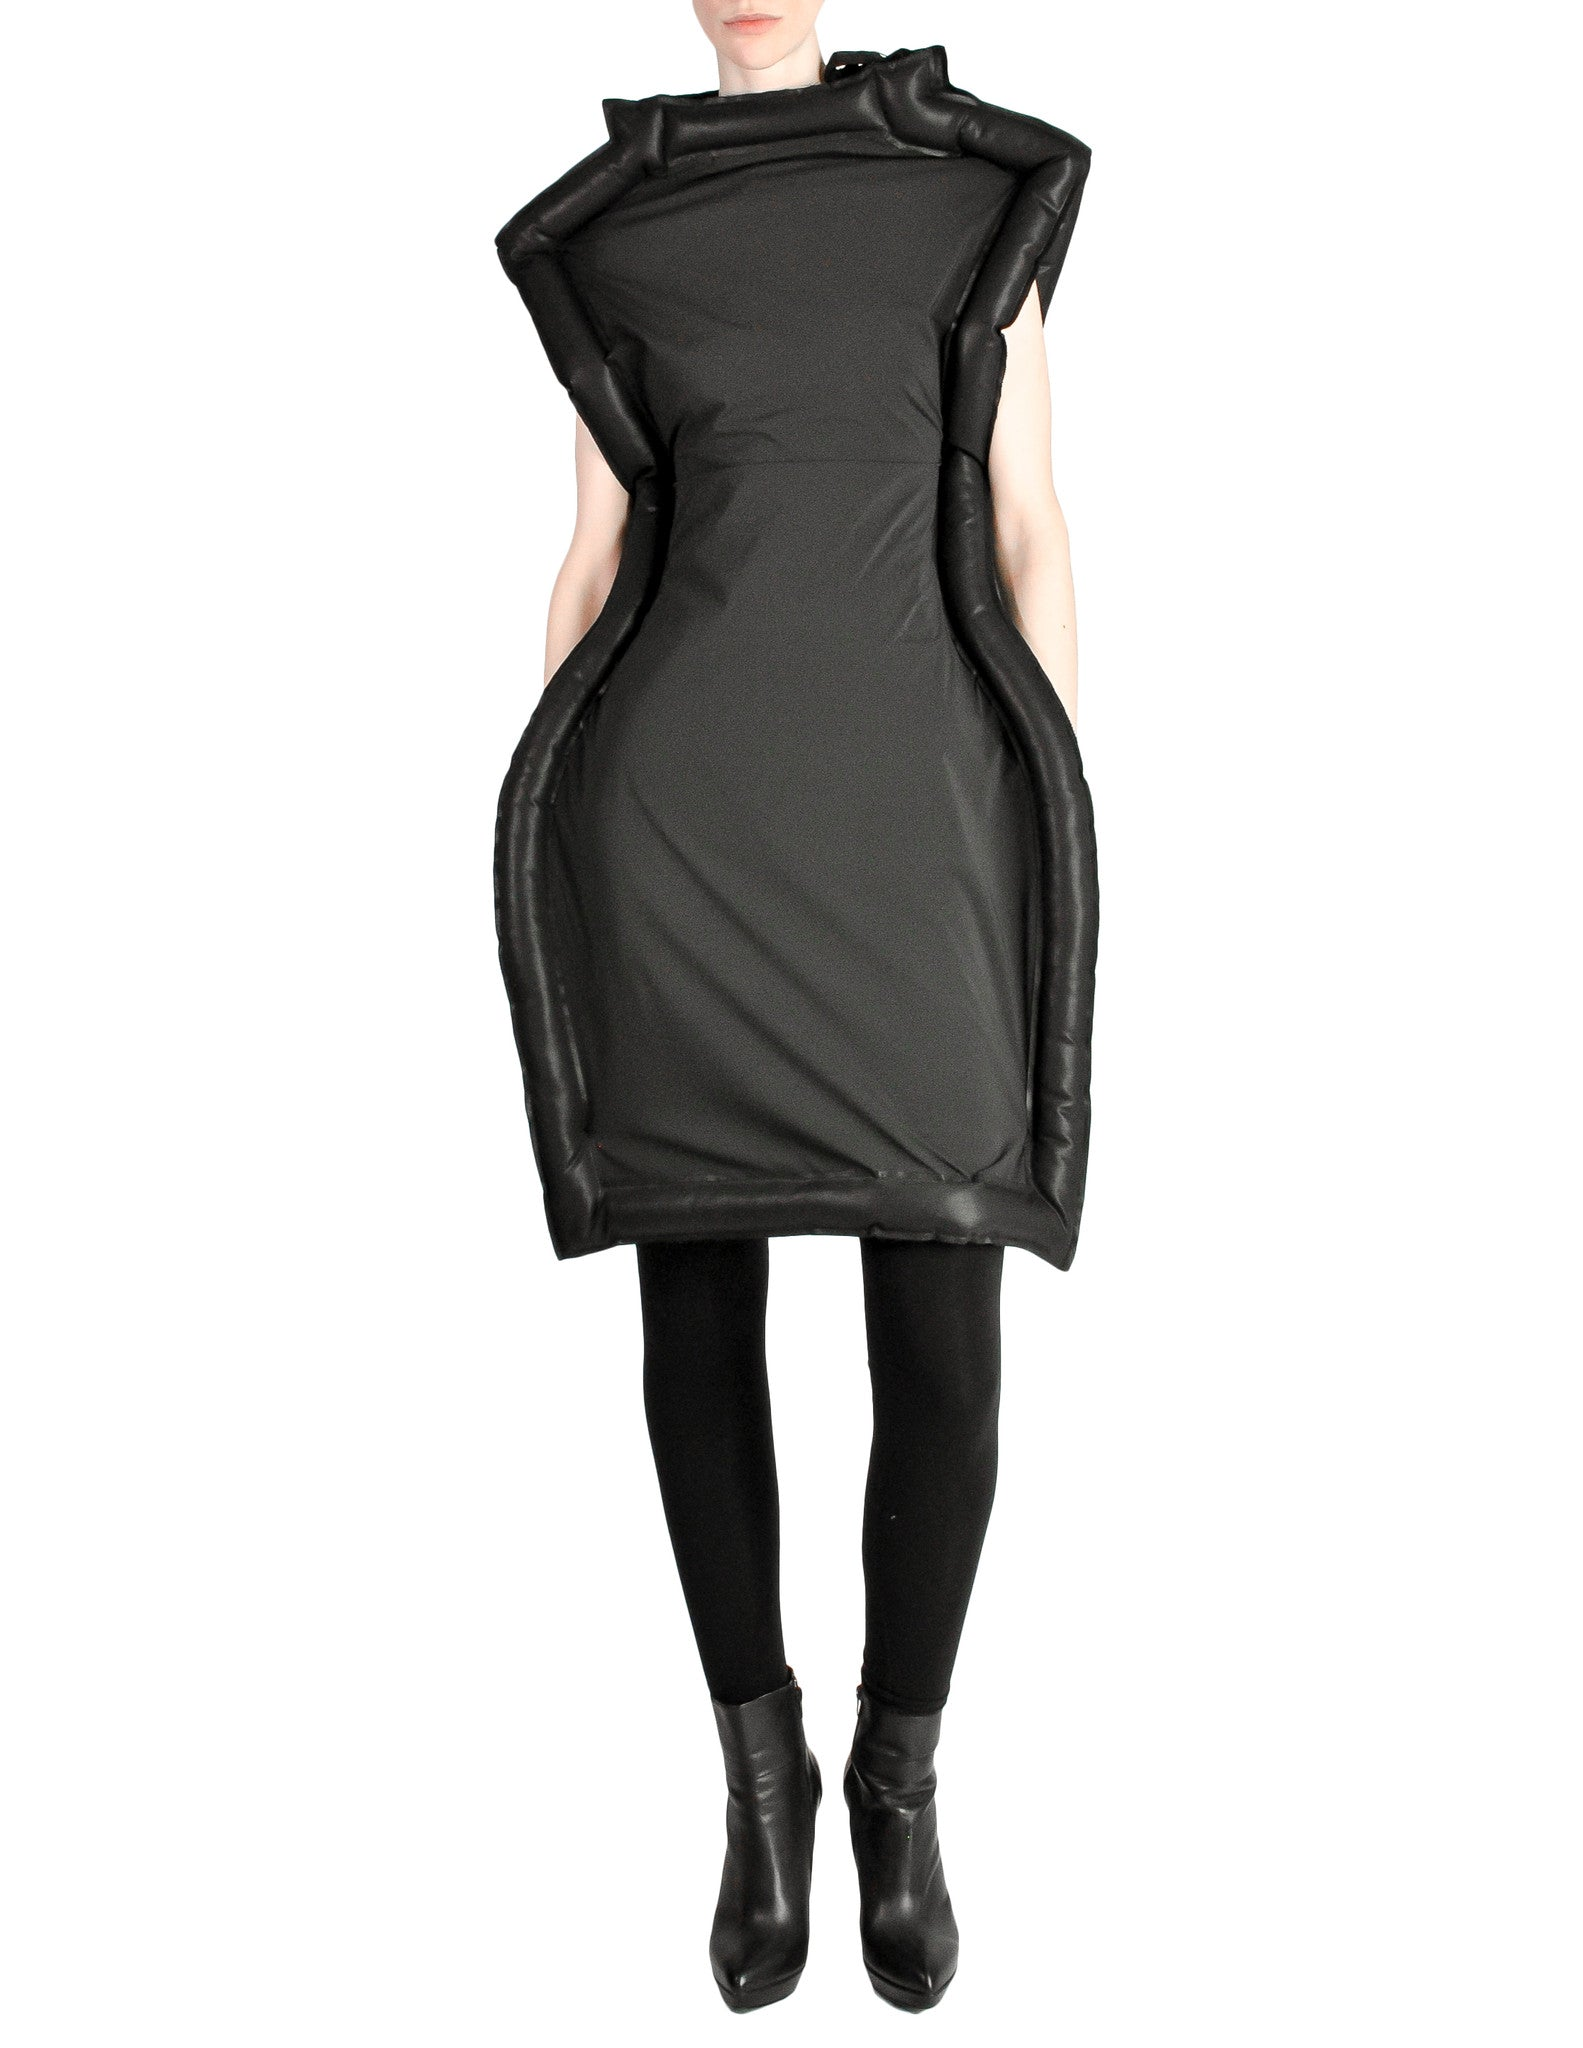 Comme des Garçons Black Puffed Tube Frame Dress - Amarcord Vintage Fashion  - 1